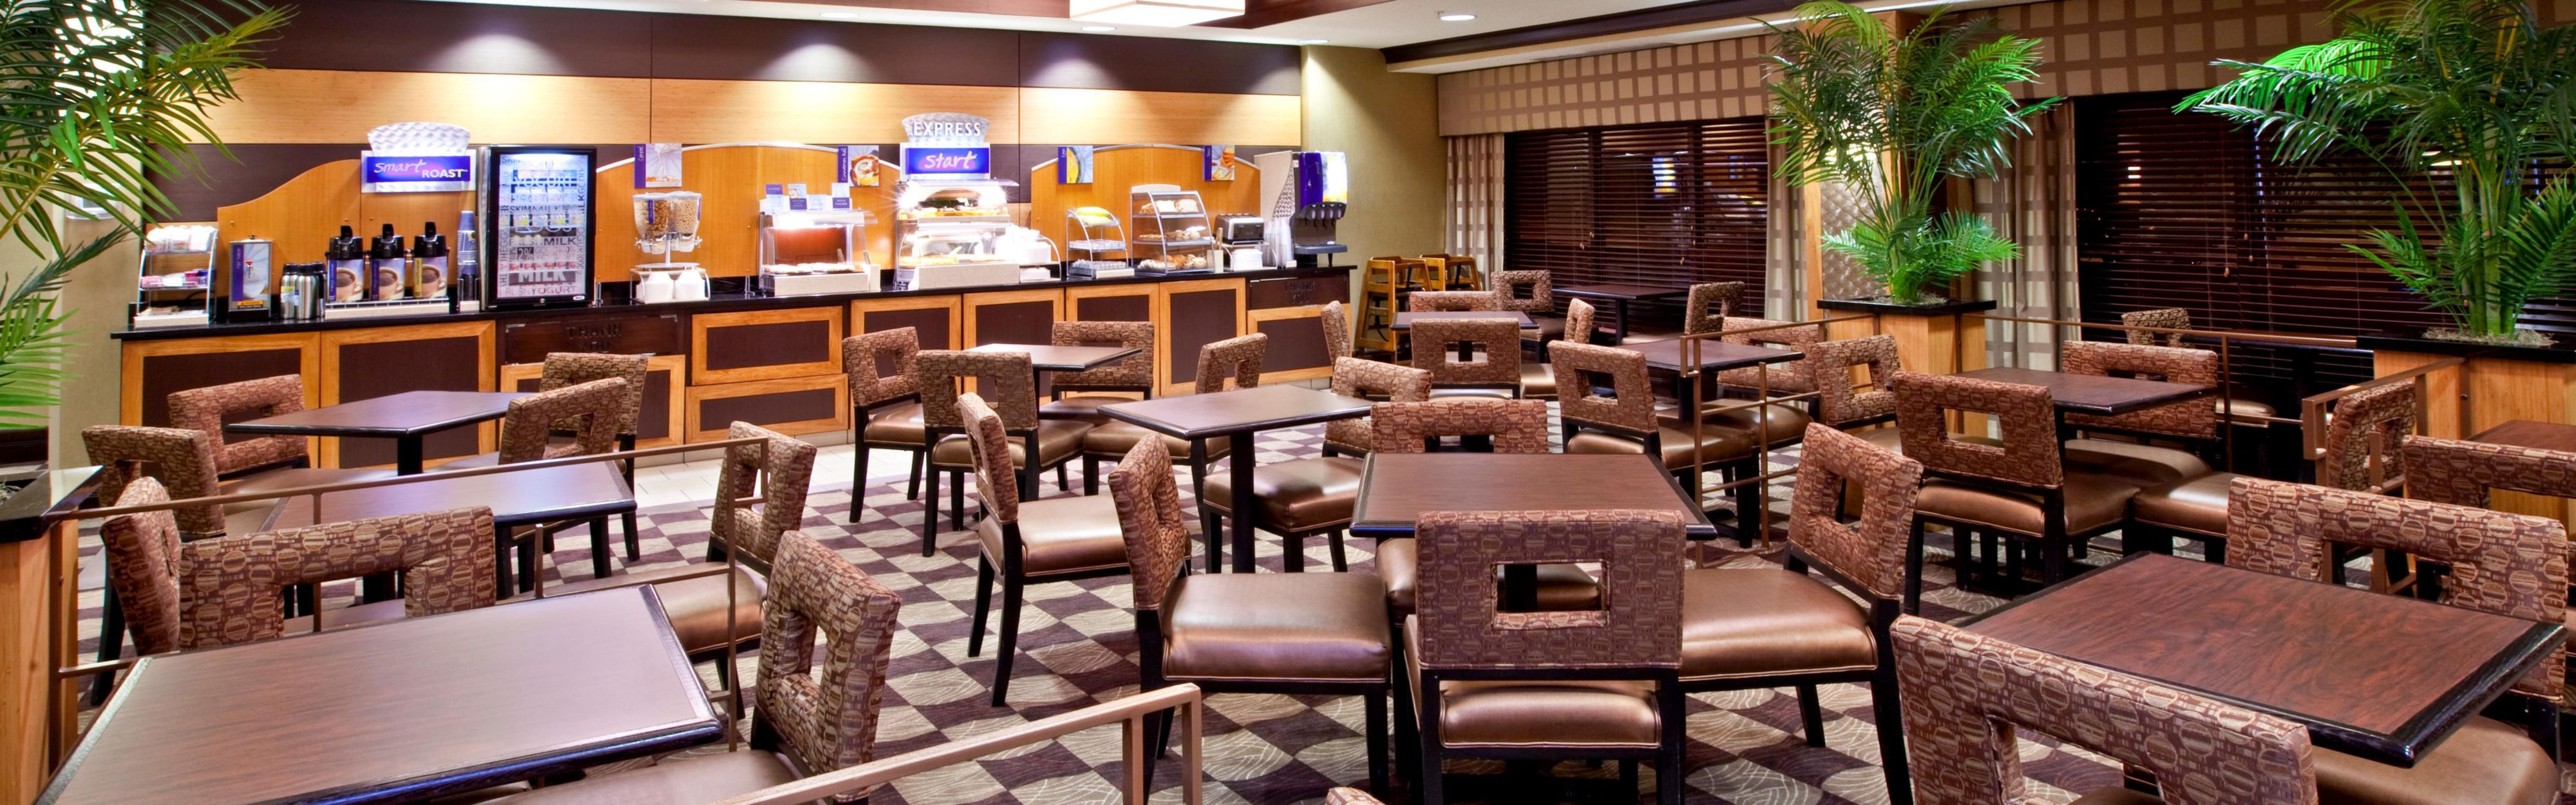 Holiday Inn Express & Suites Seymour image 3